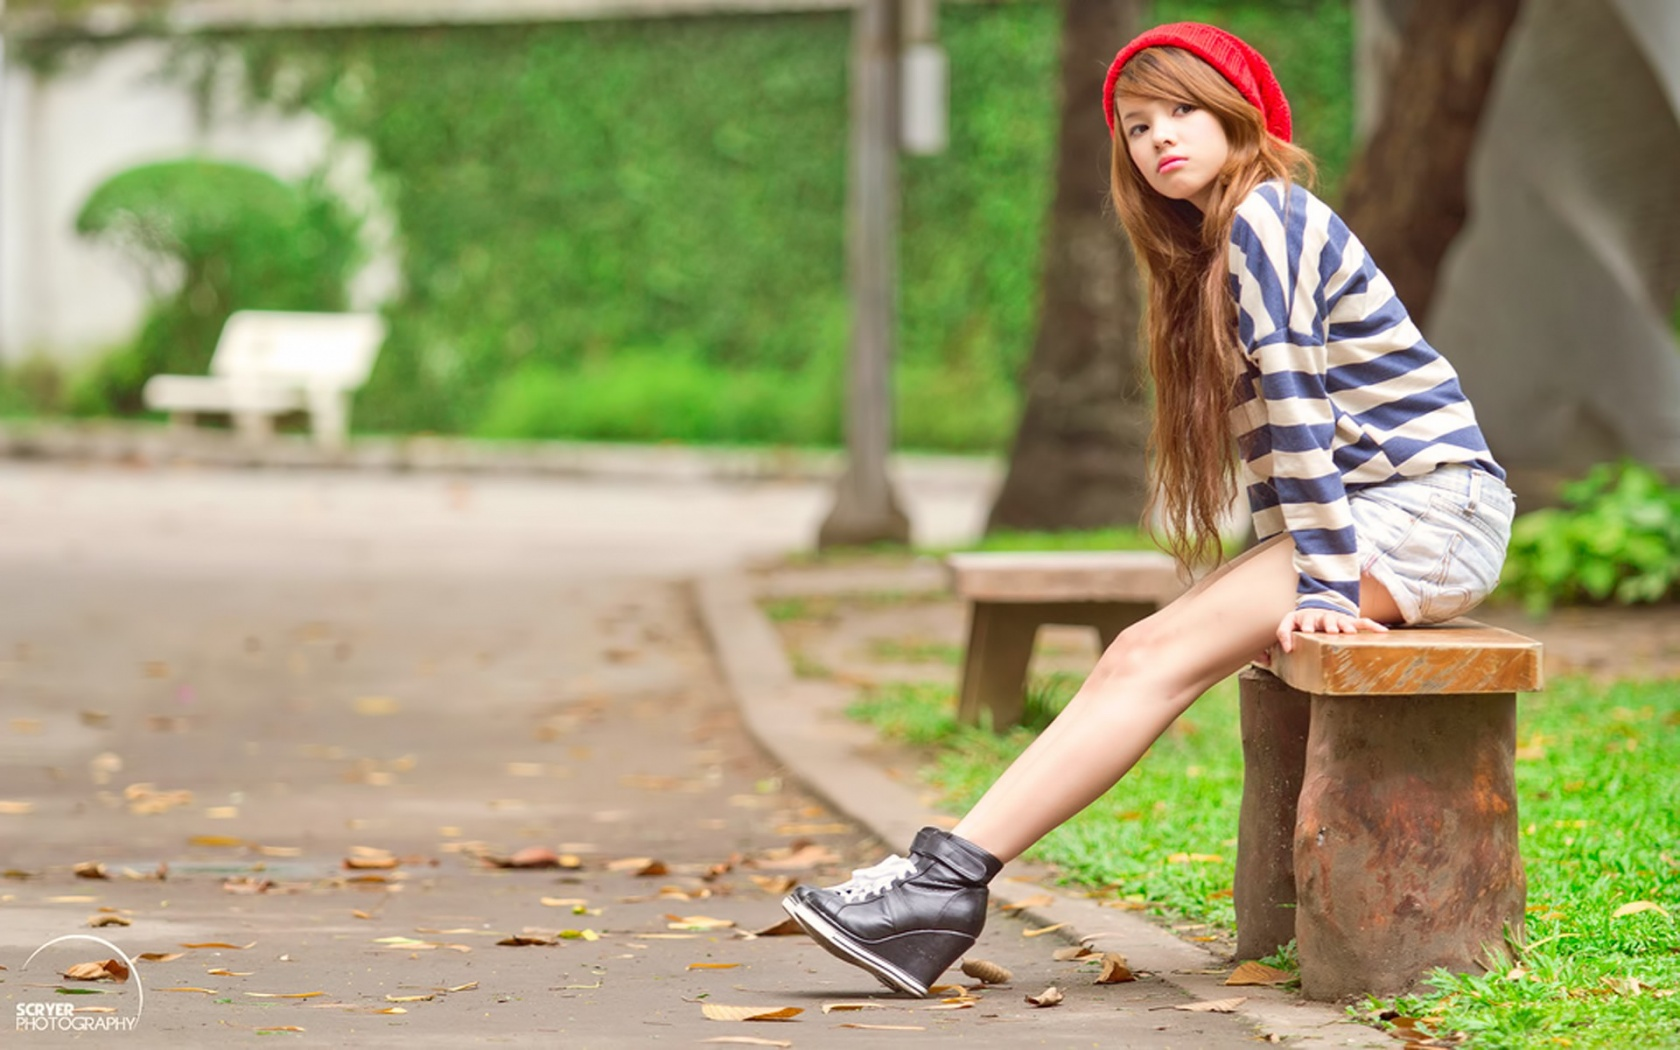 Cute Backgrounds For Teenage Girls Best Wallpaper Background 1680x1050